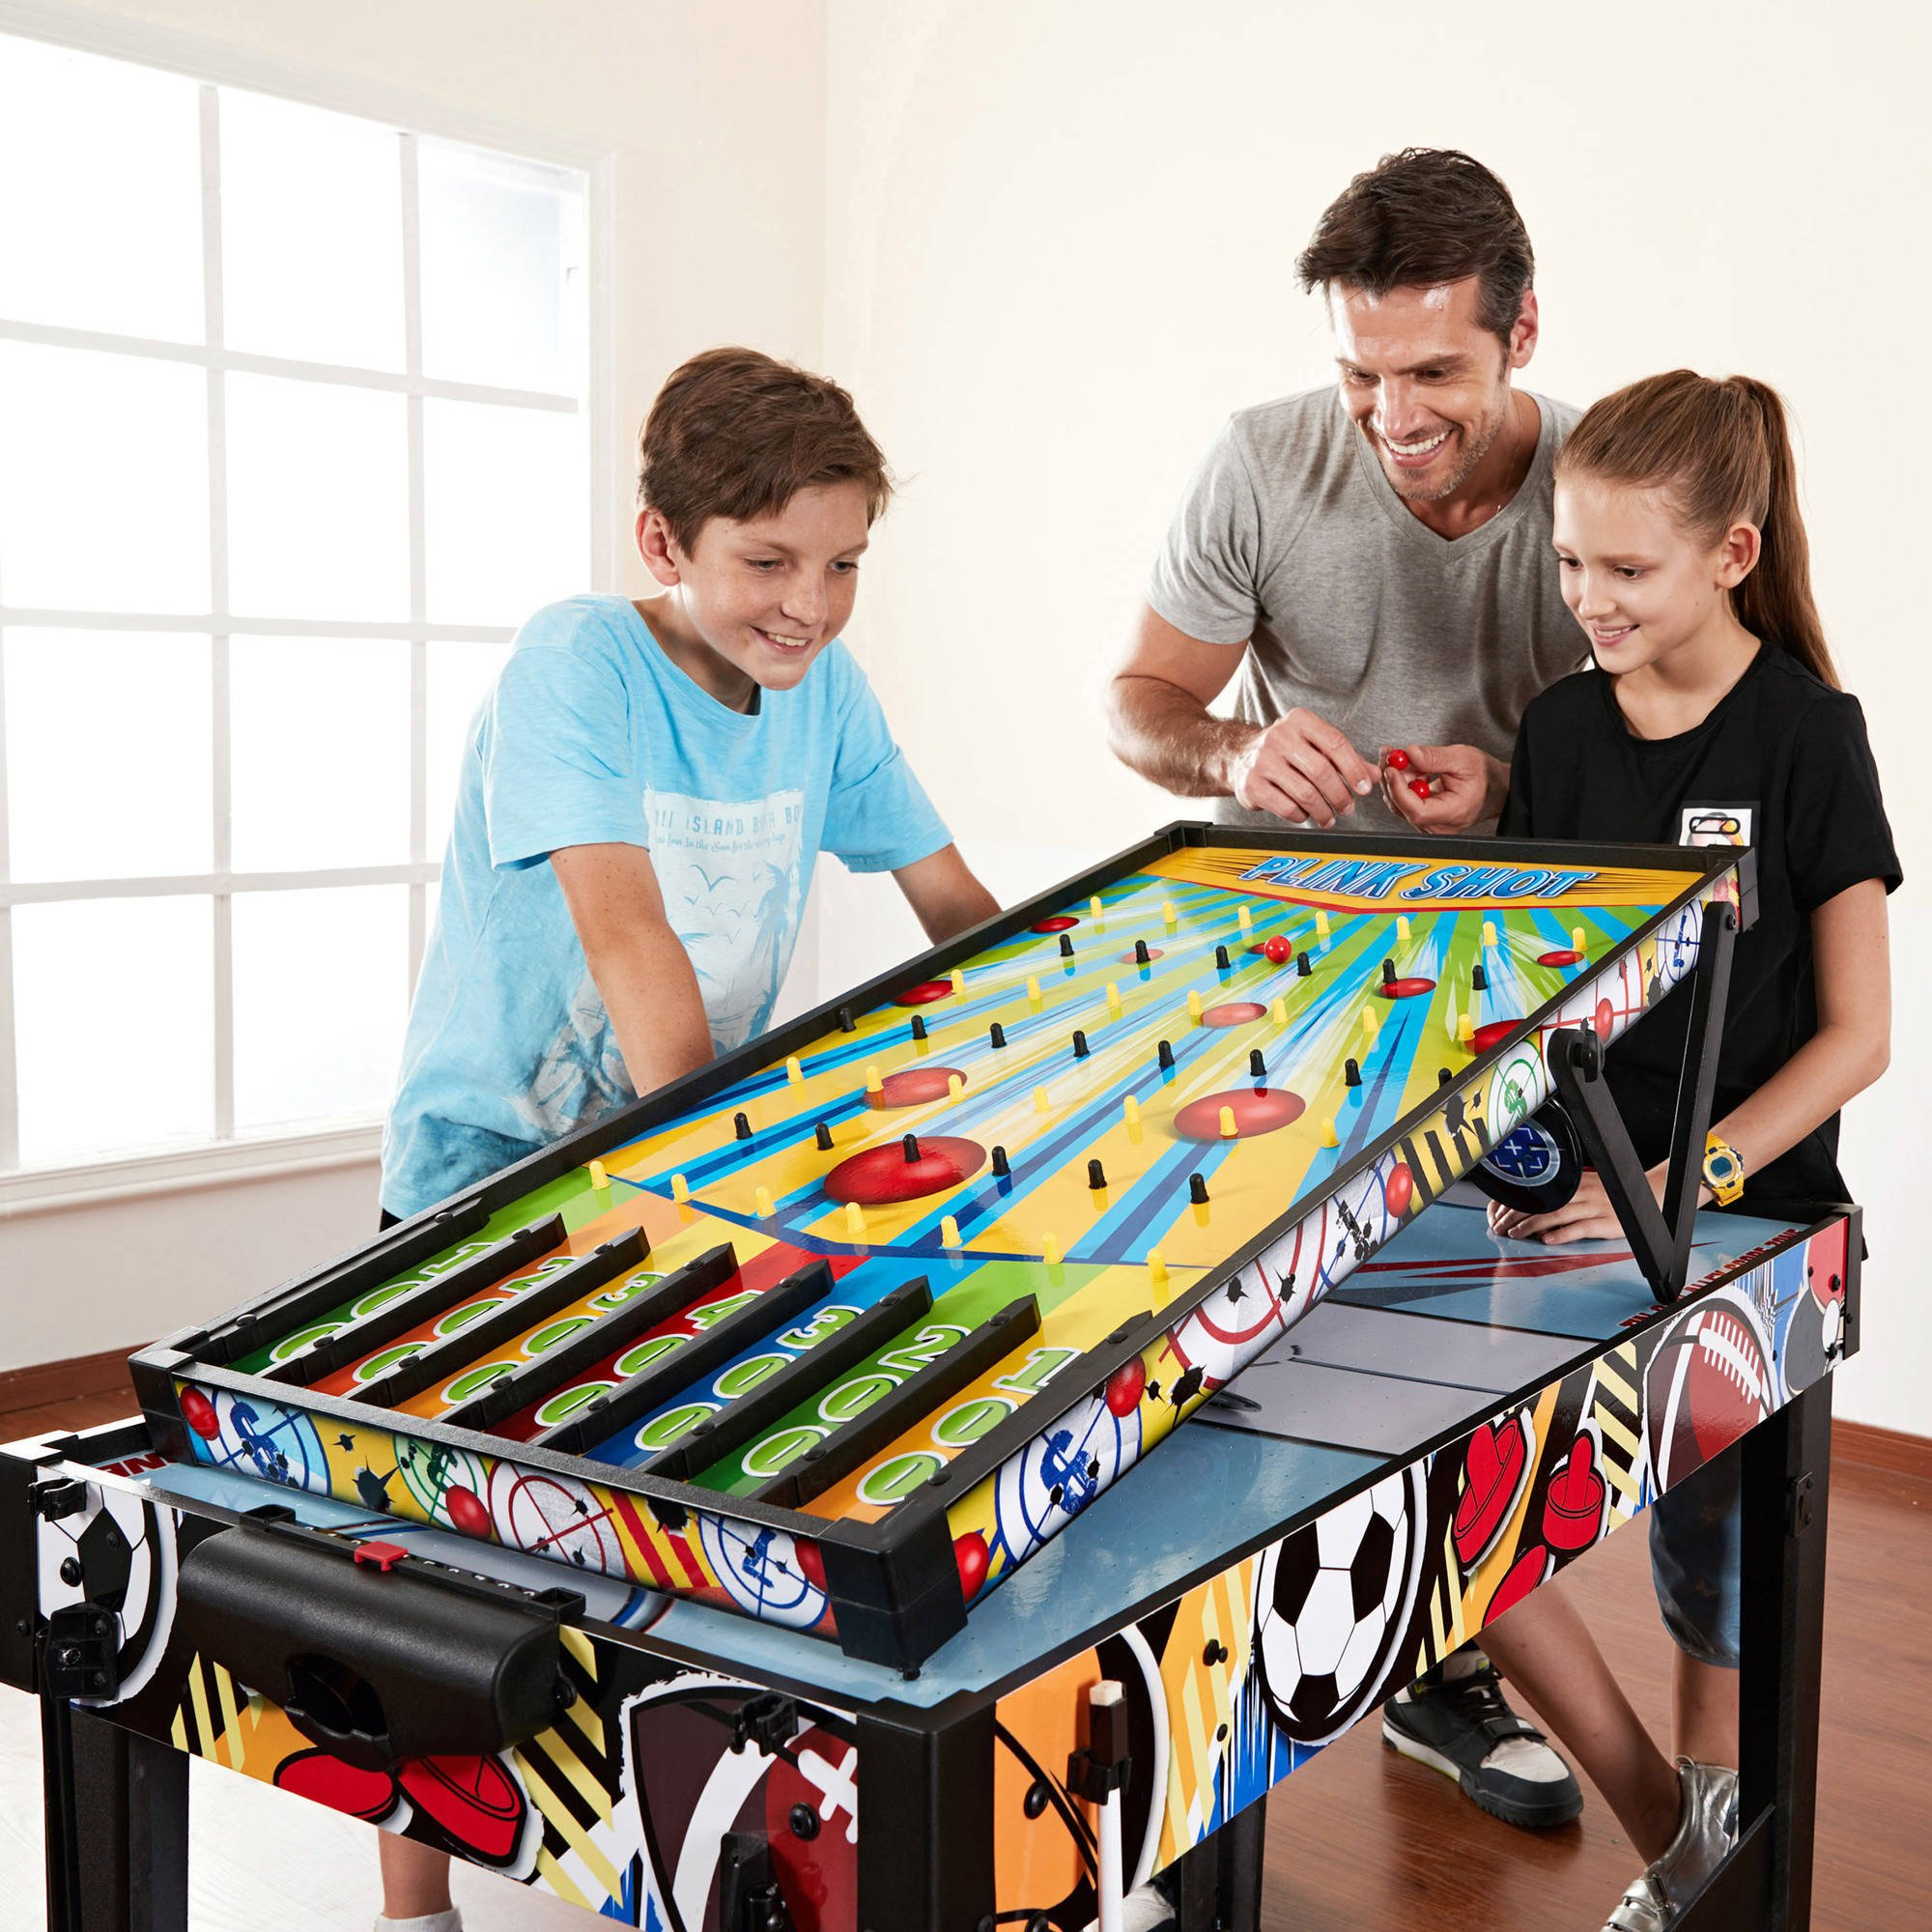 MD Sports 48 inch 12 in 1 Easily Convert Combo Multi-Game Table by Medal Sports (Image #8)